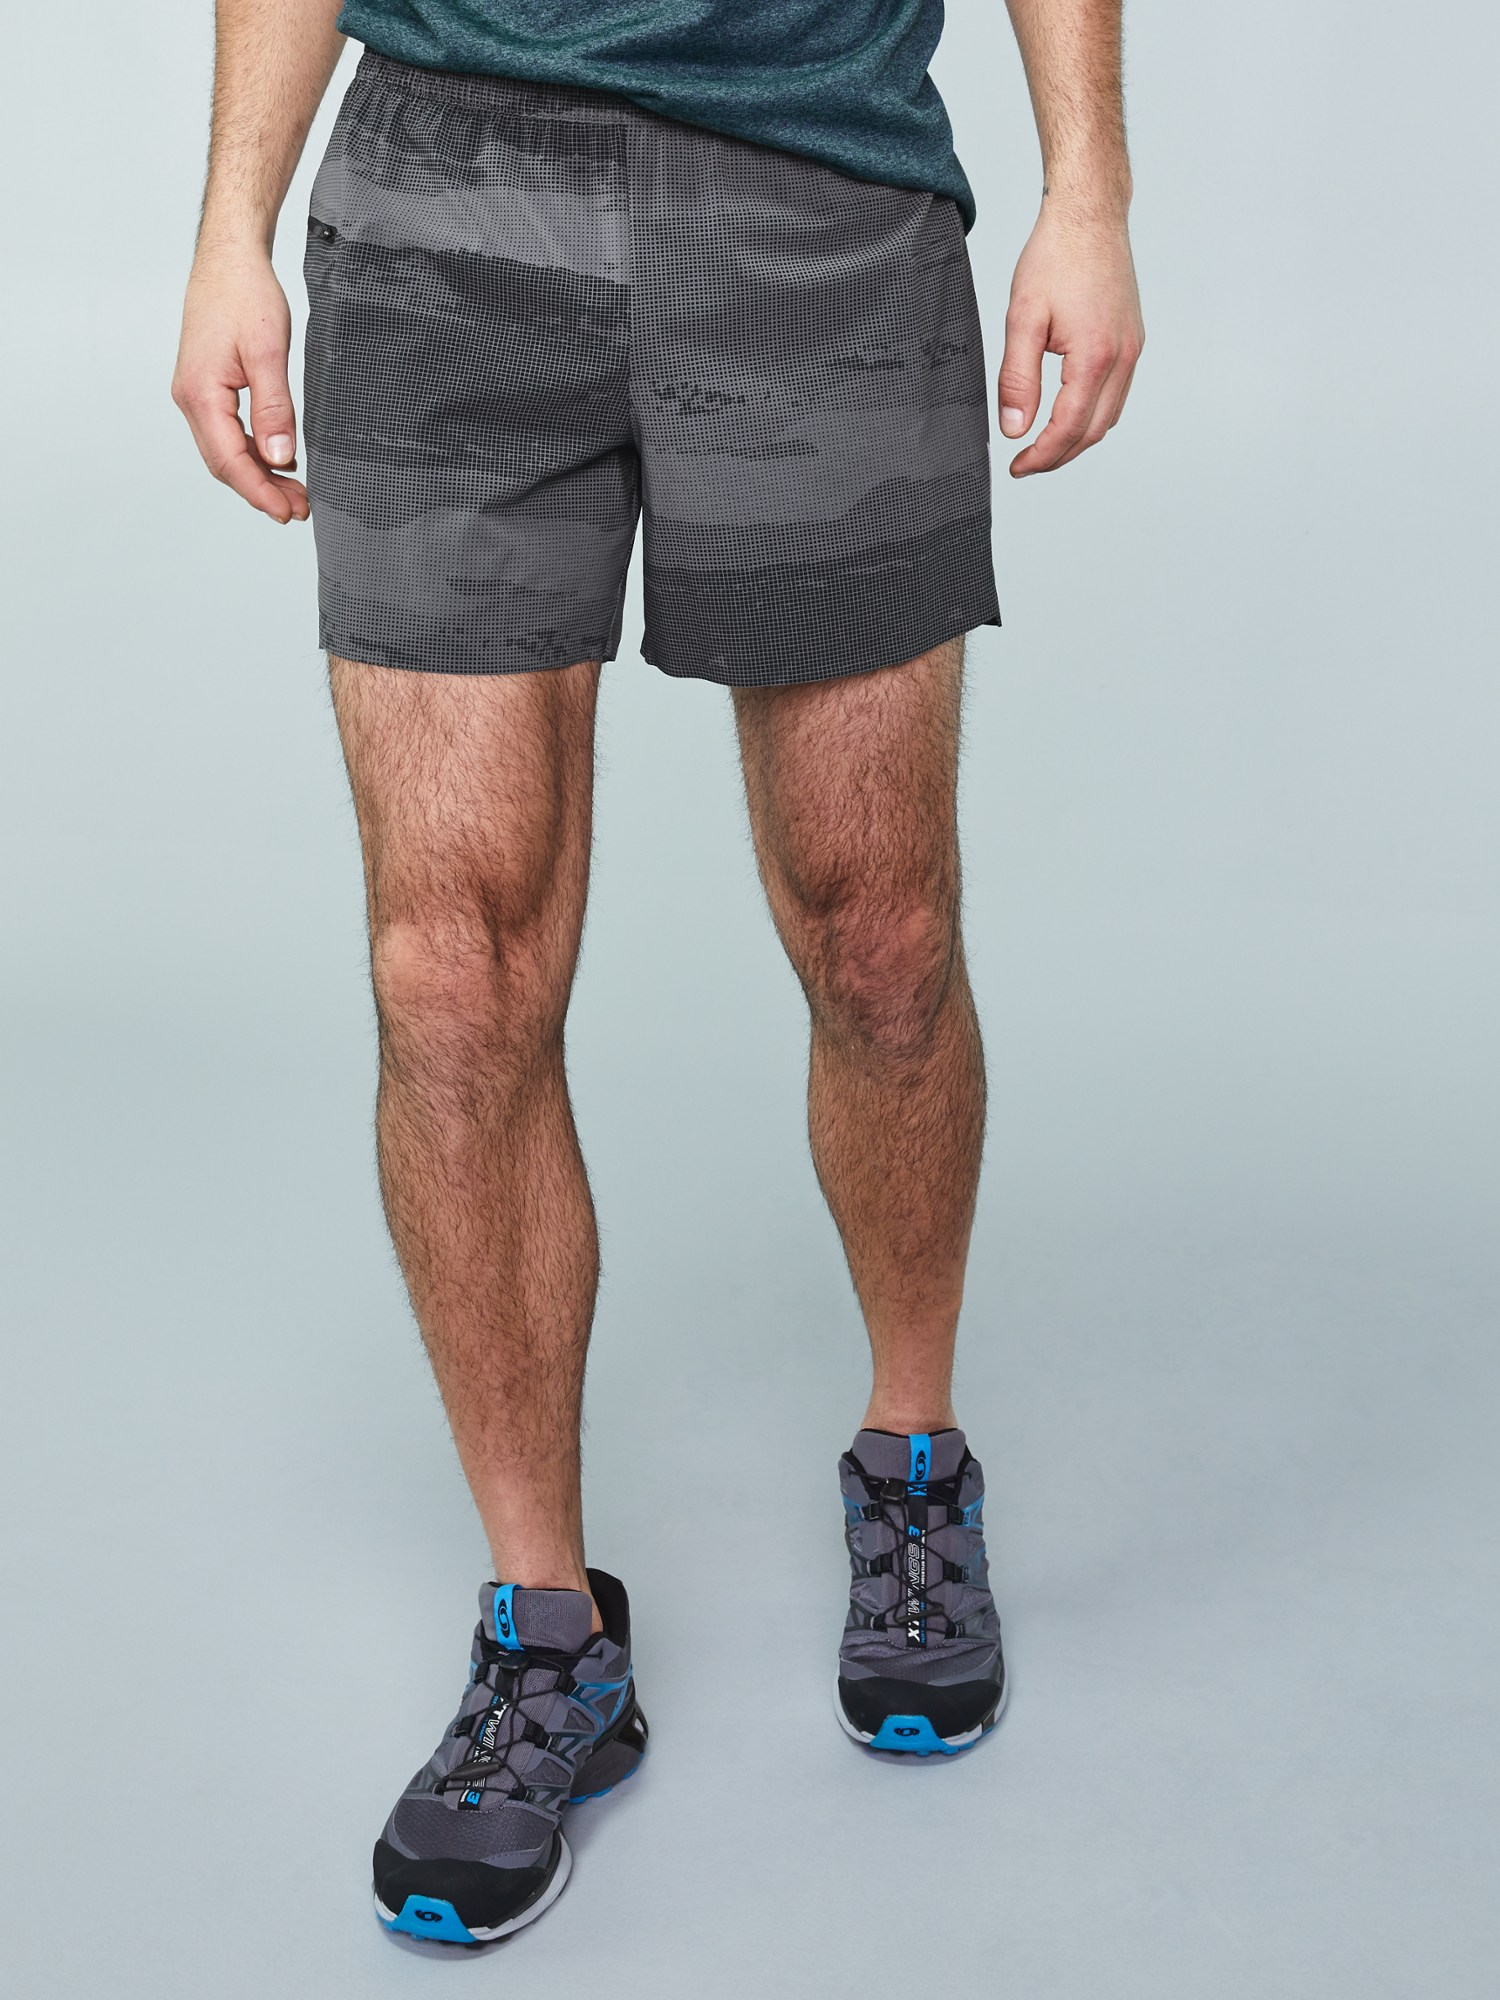 REI Co-op On The Trail Print Run Shorts - Men's